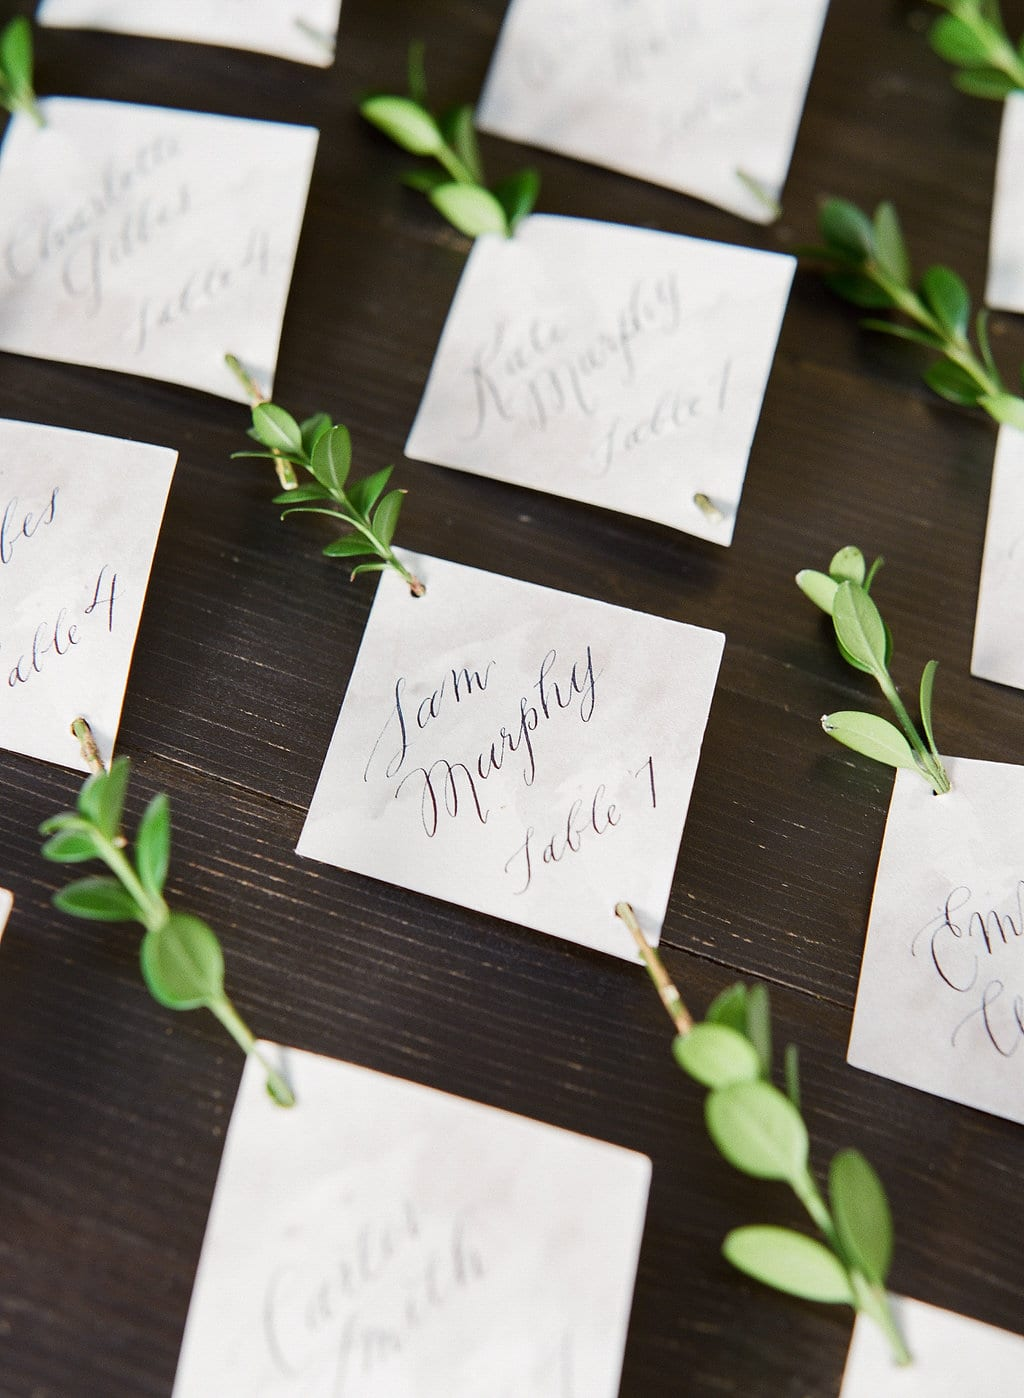 Wedding-day calligraphy escort cards with plant element